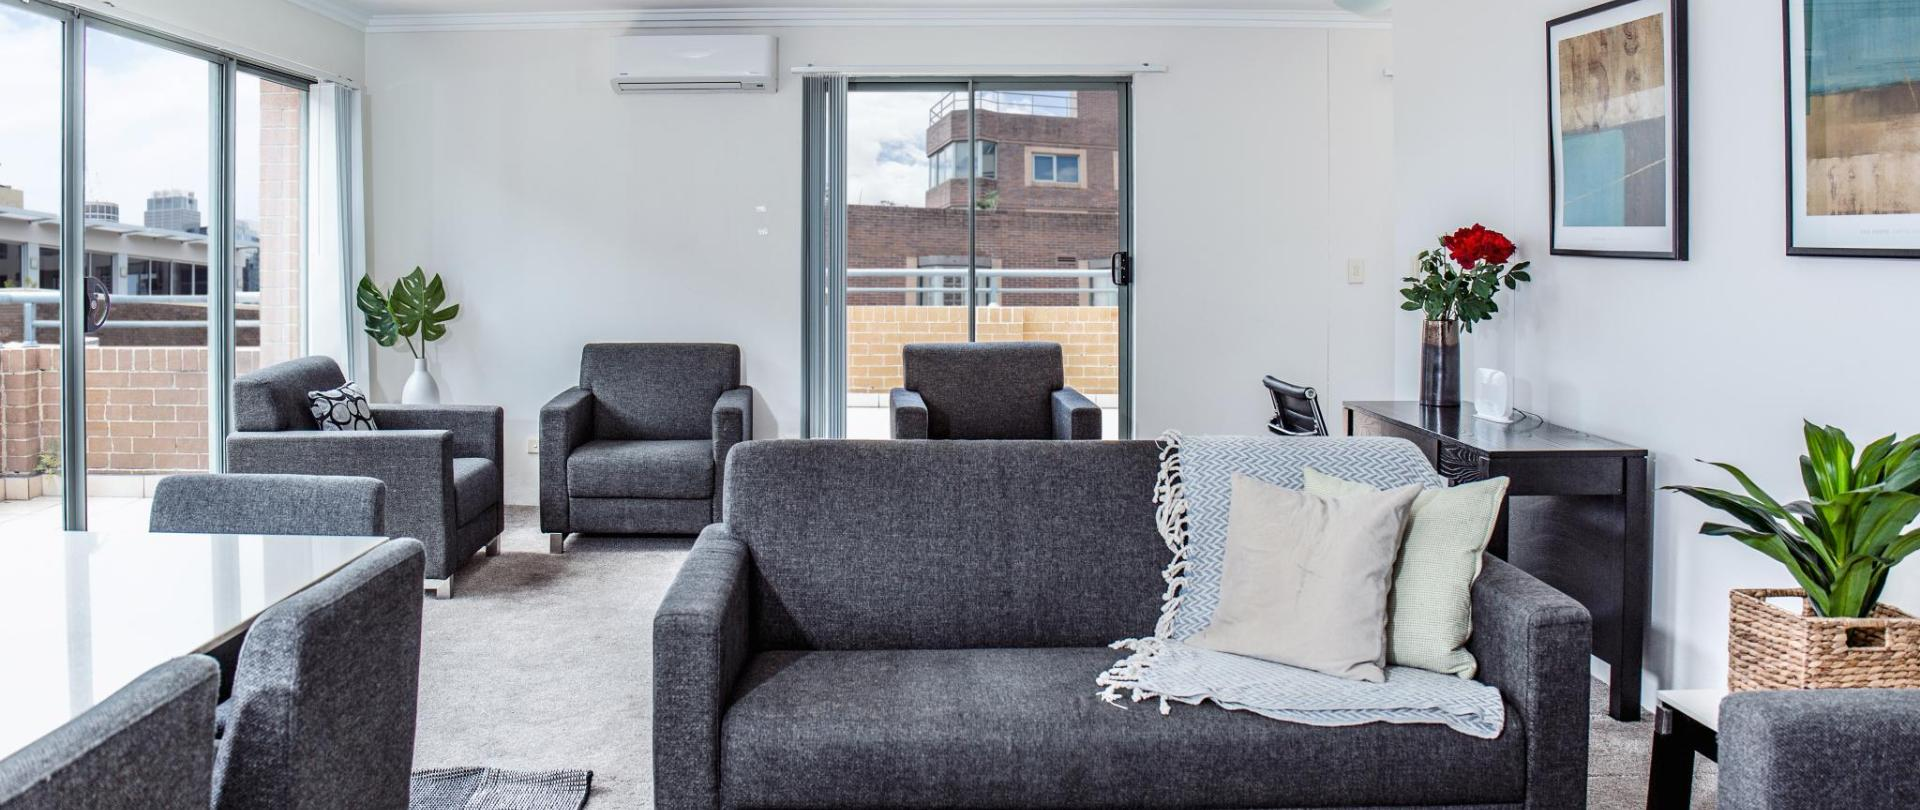 Apartmány DD na Darling Harbour